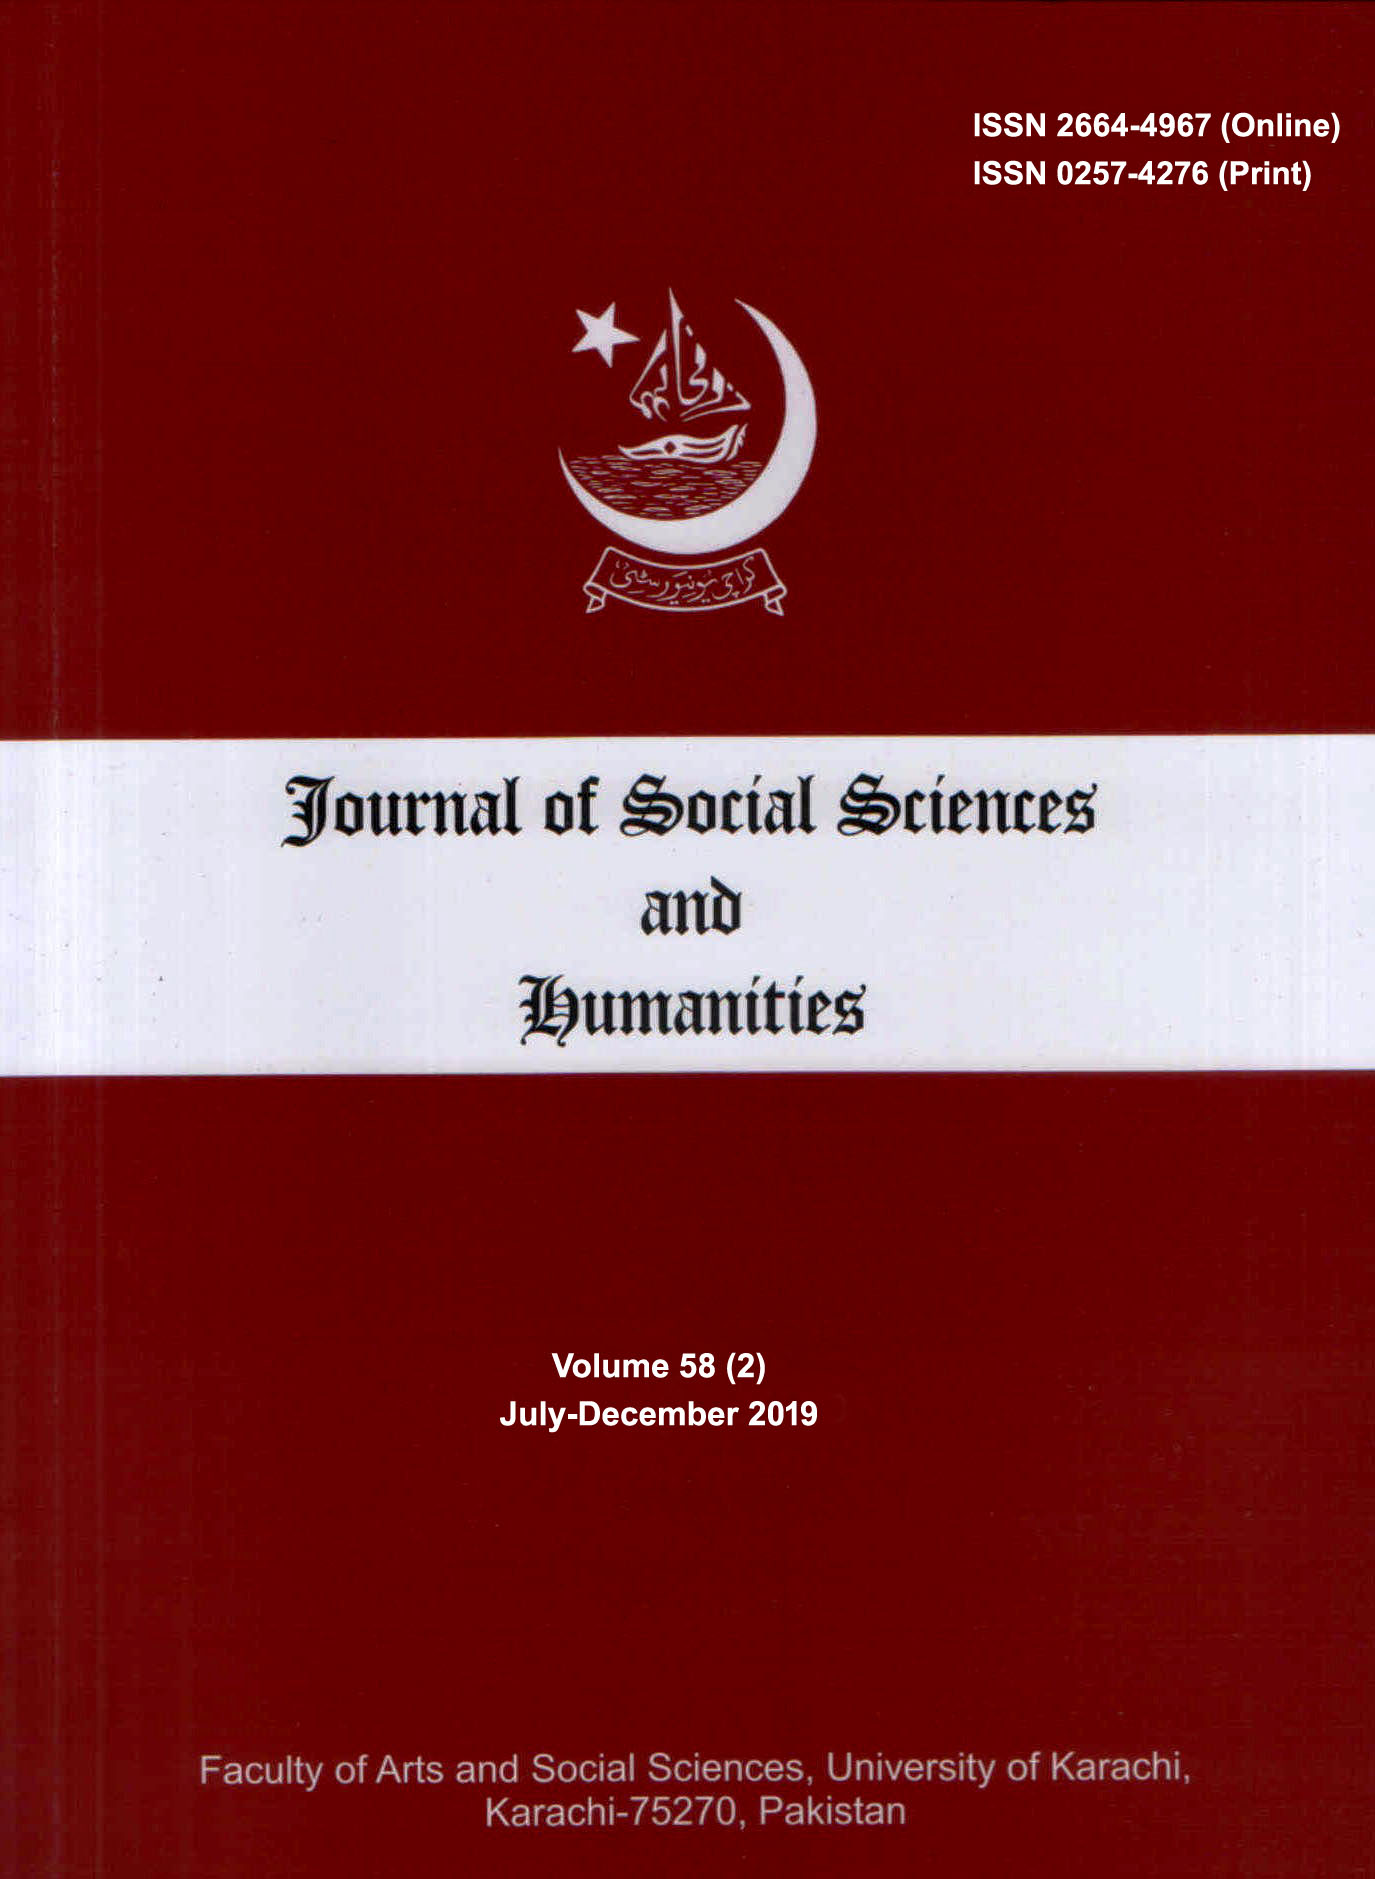 View Vol. 58 No. 2 (2019): JOURNAL OF SOCIAL SCIENCES AND HUMANITIES, UNIVERSITY OF KARACHI